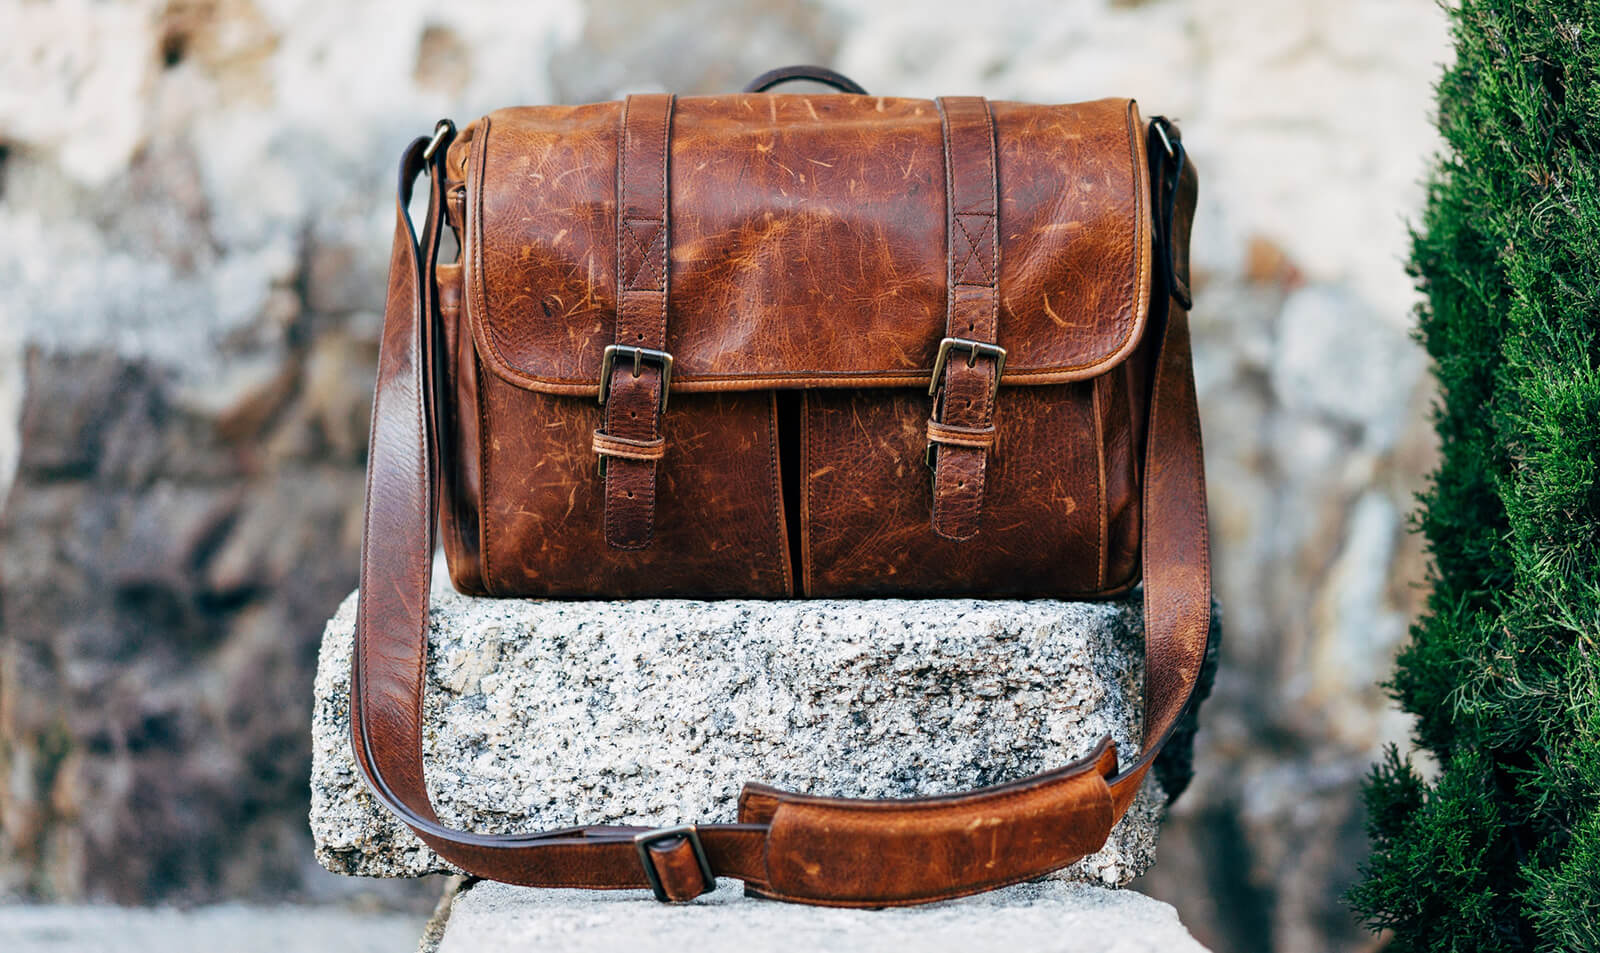 Stunning and Minimalist Messenger Bags